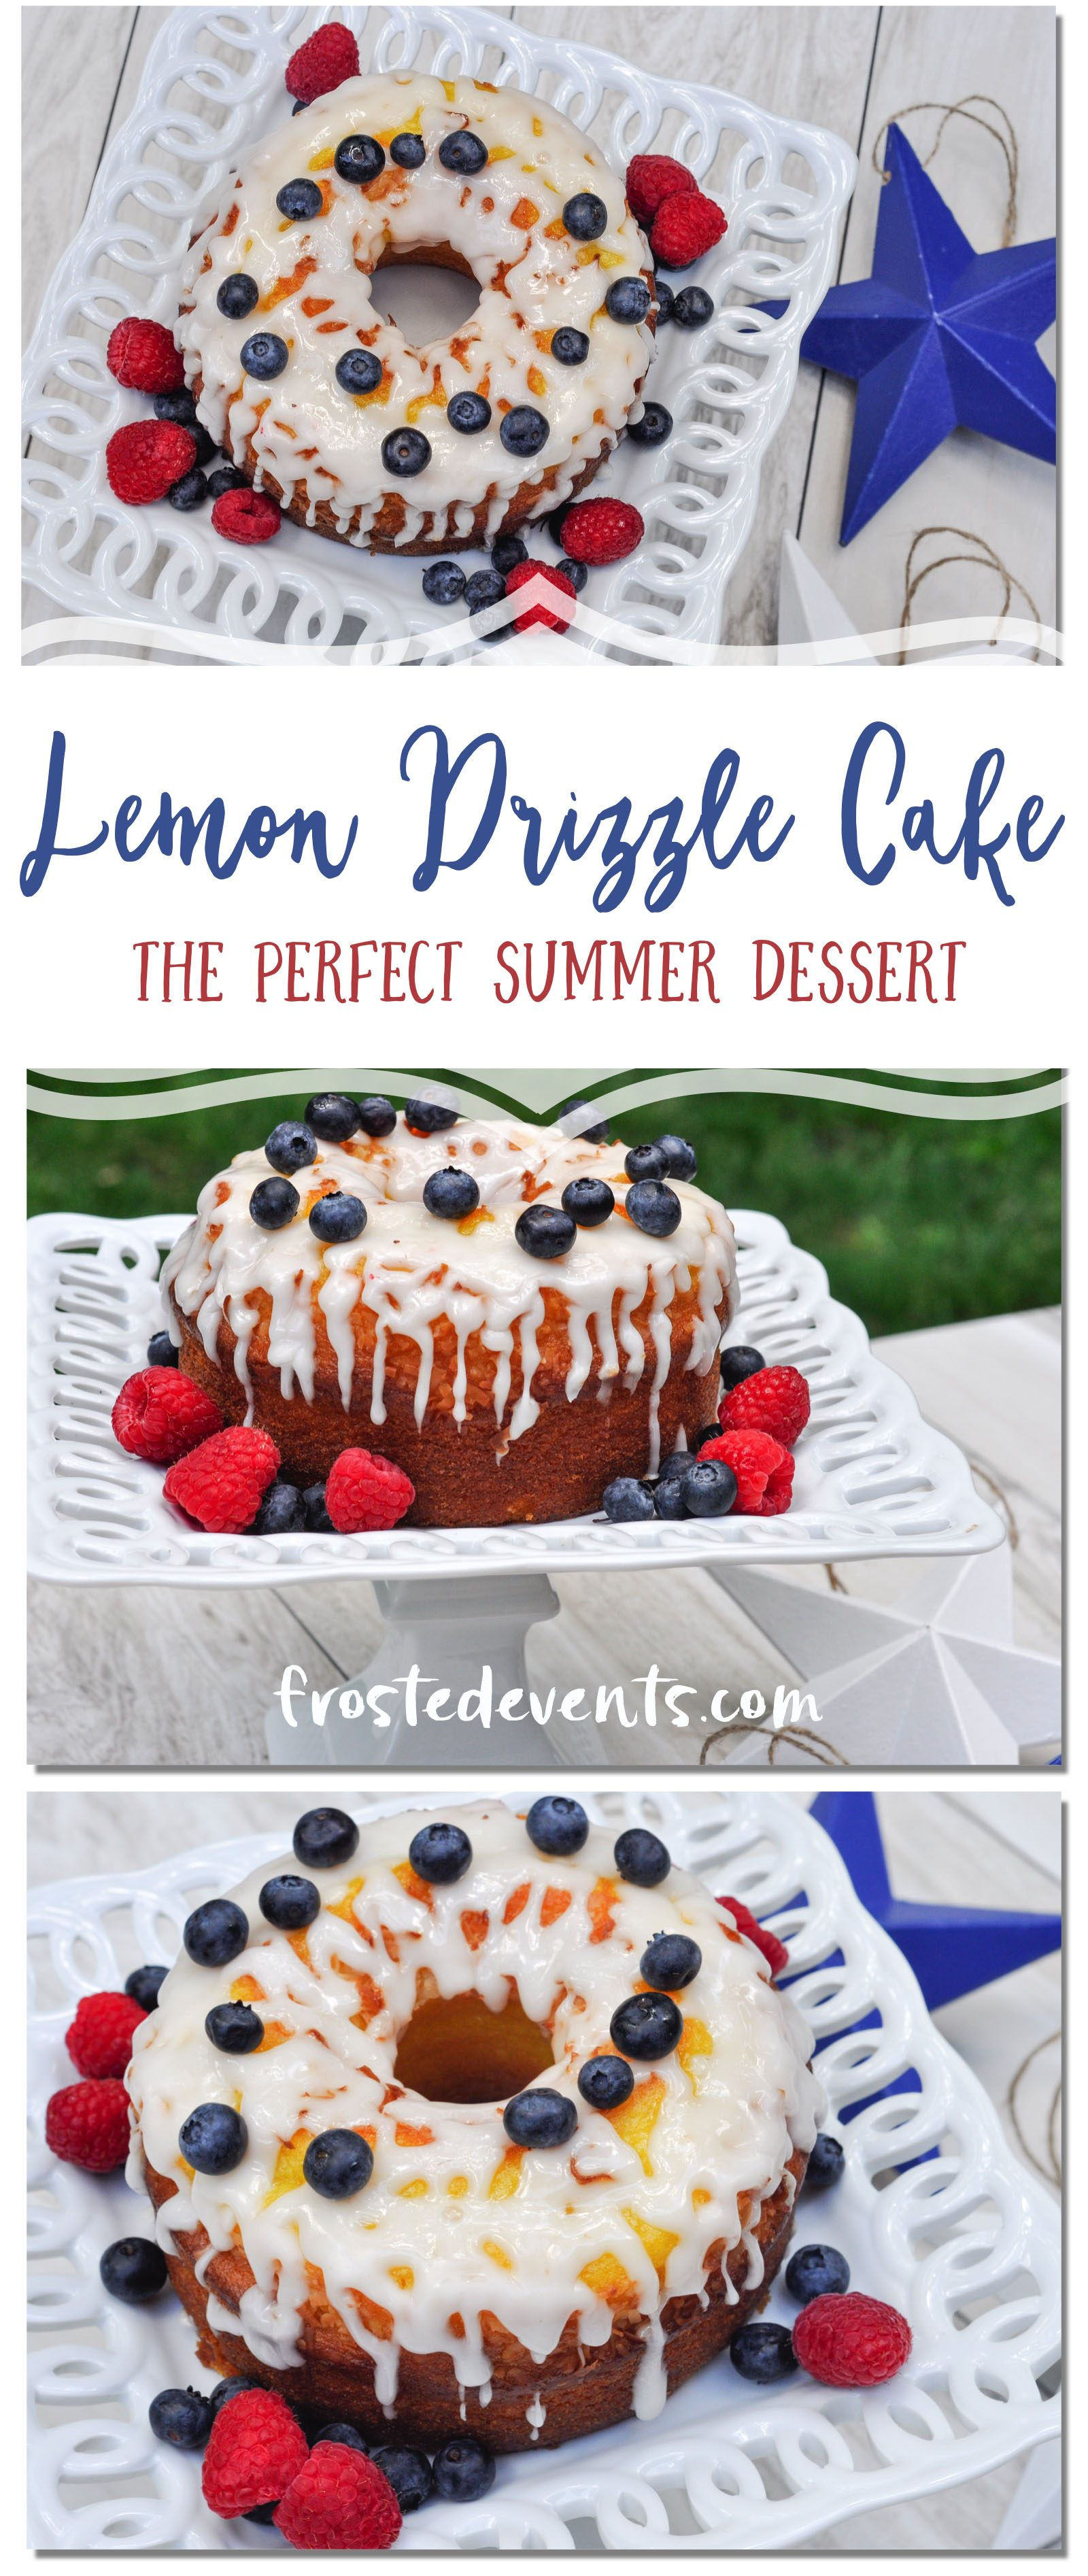 Fourth of July Desserts- Lemon Drizzle Cake Topped with Berries